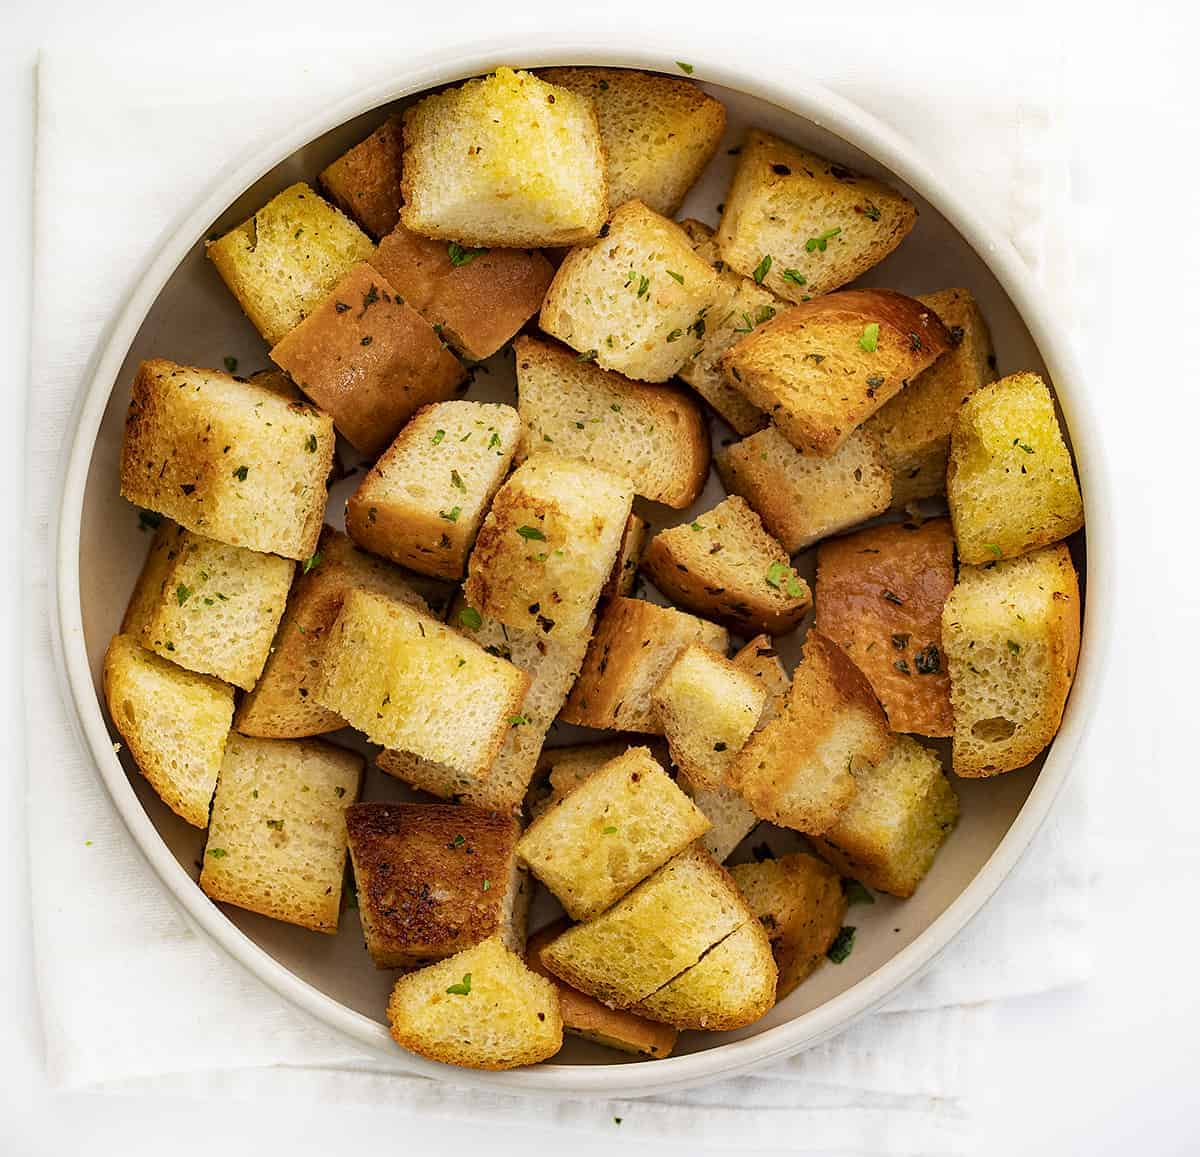 Bowl of The Best Homemade Croutons